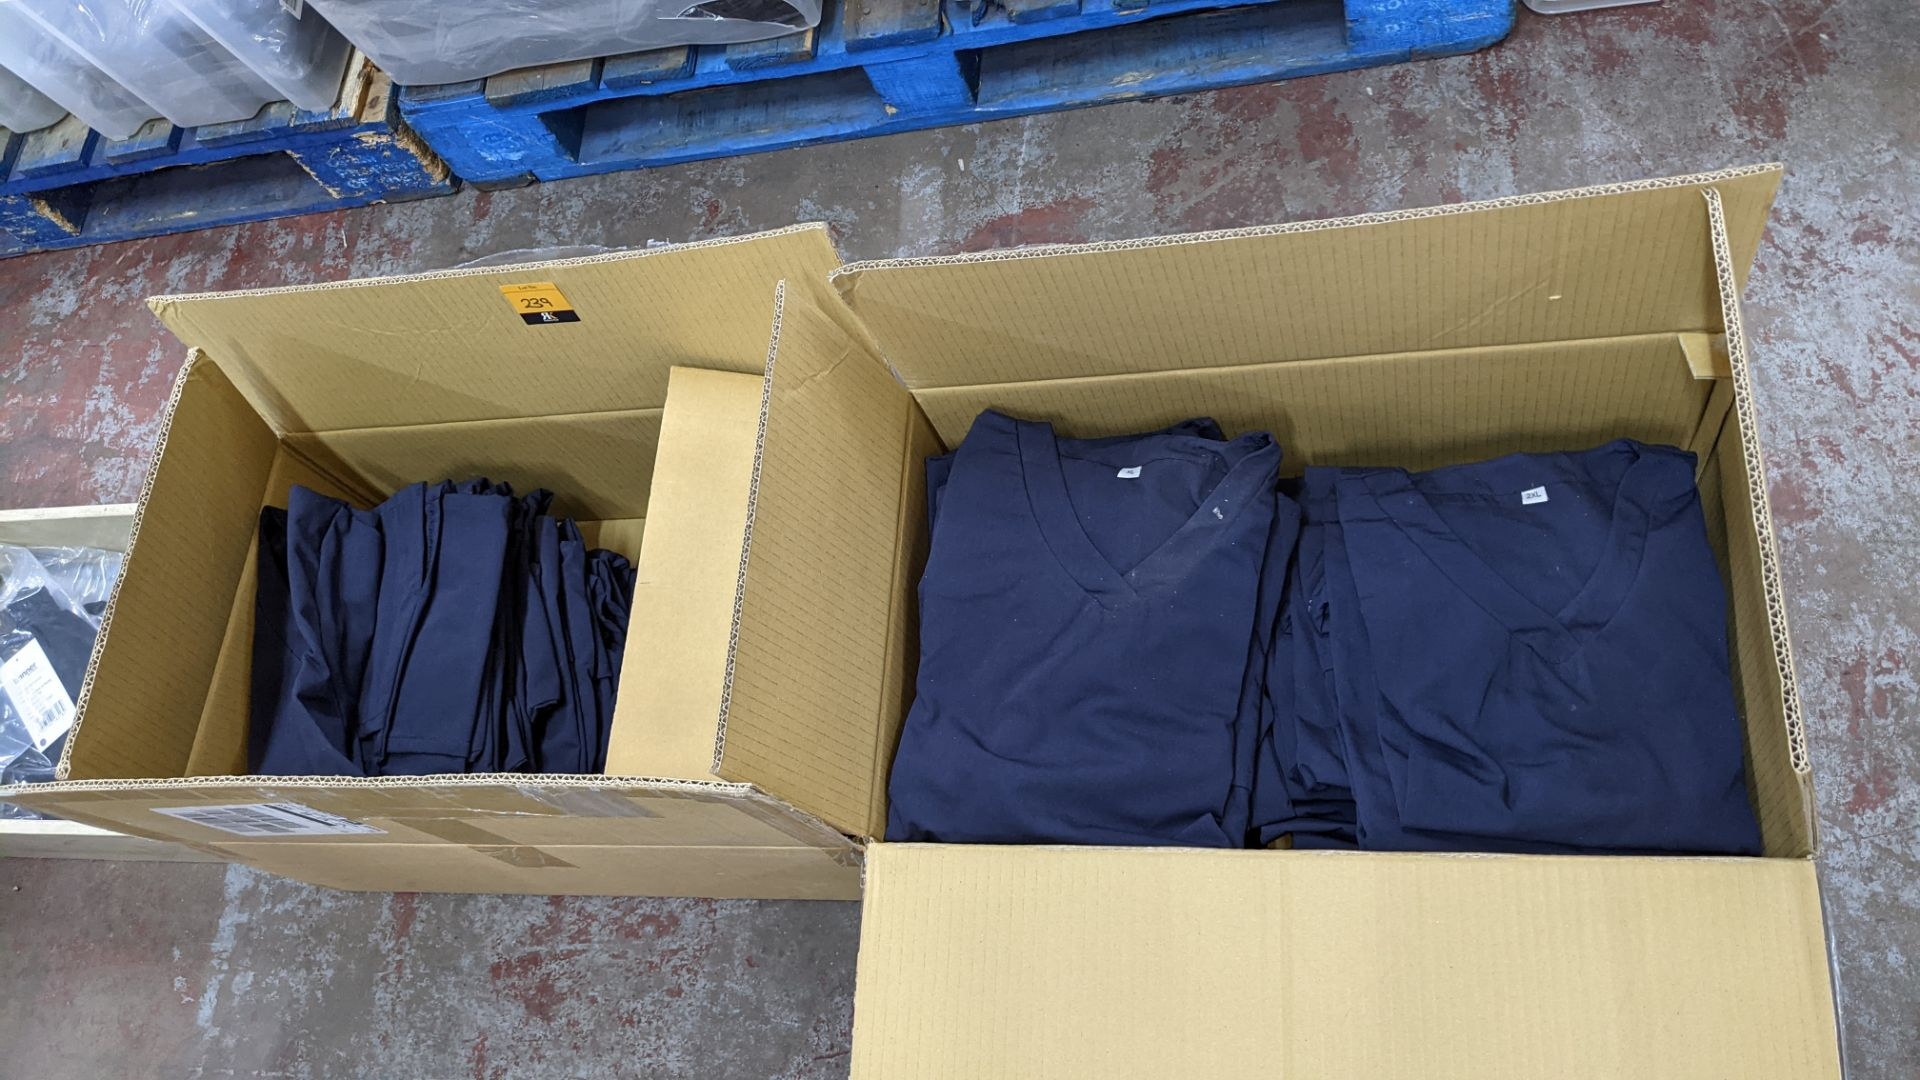 Approx 48 off navy V neck t-shirts - the contents of 2 boxes